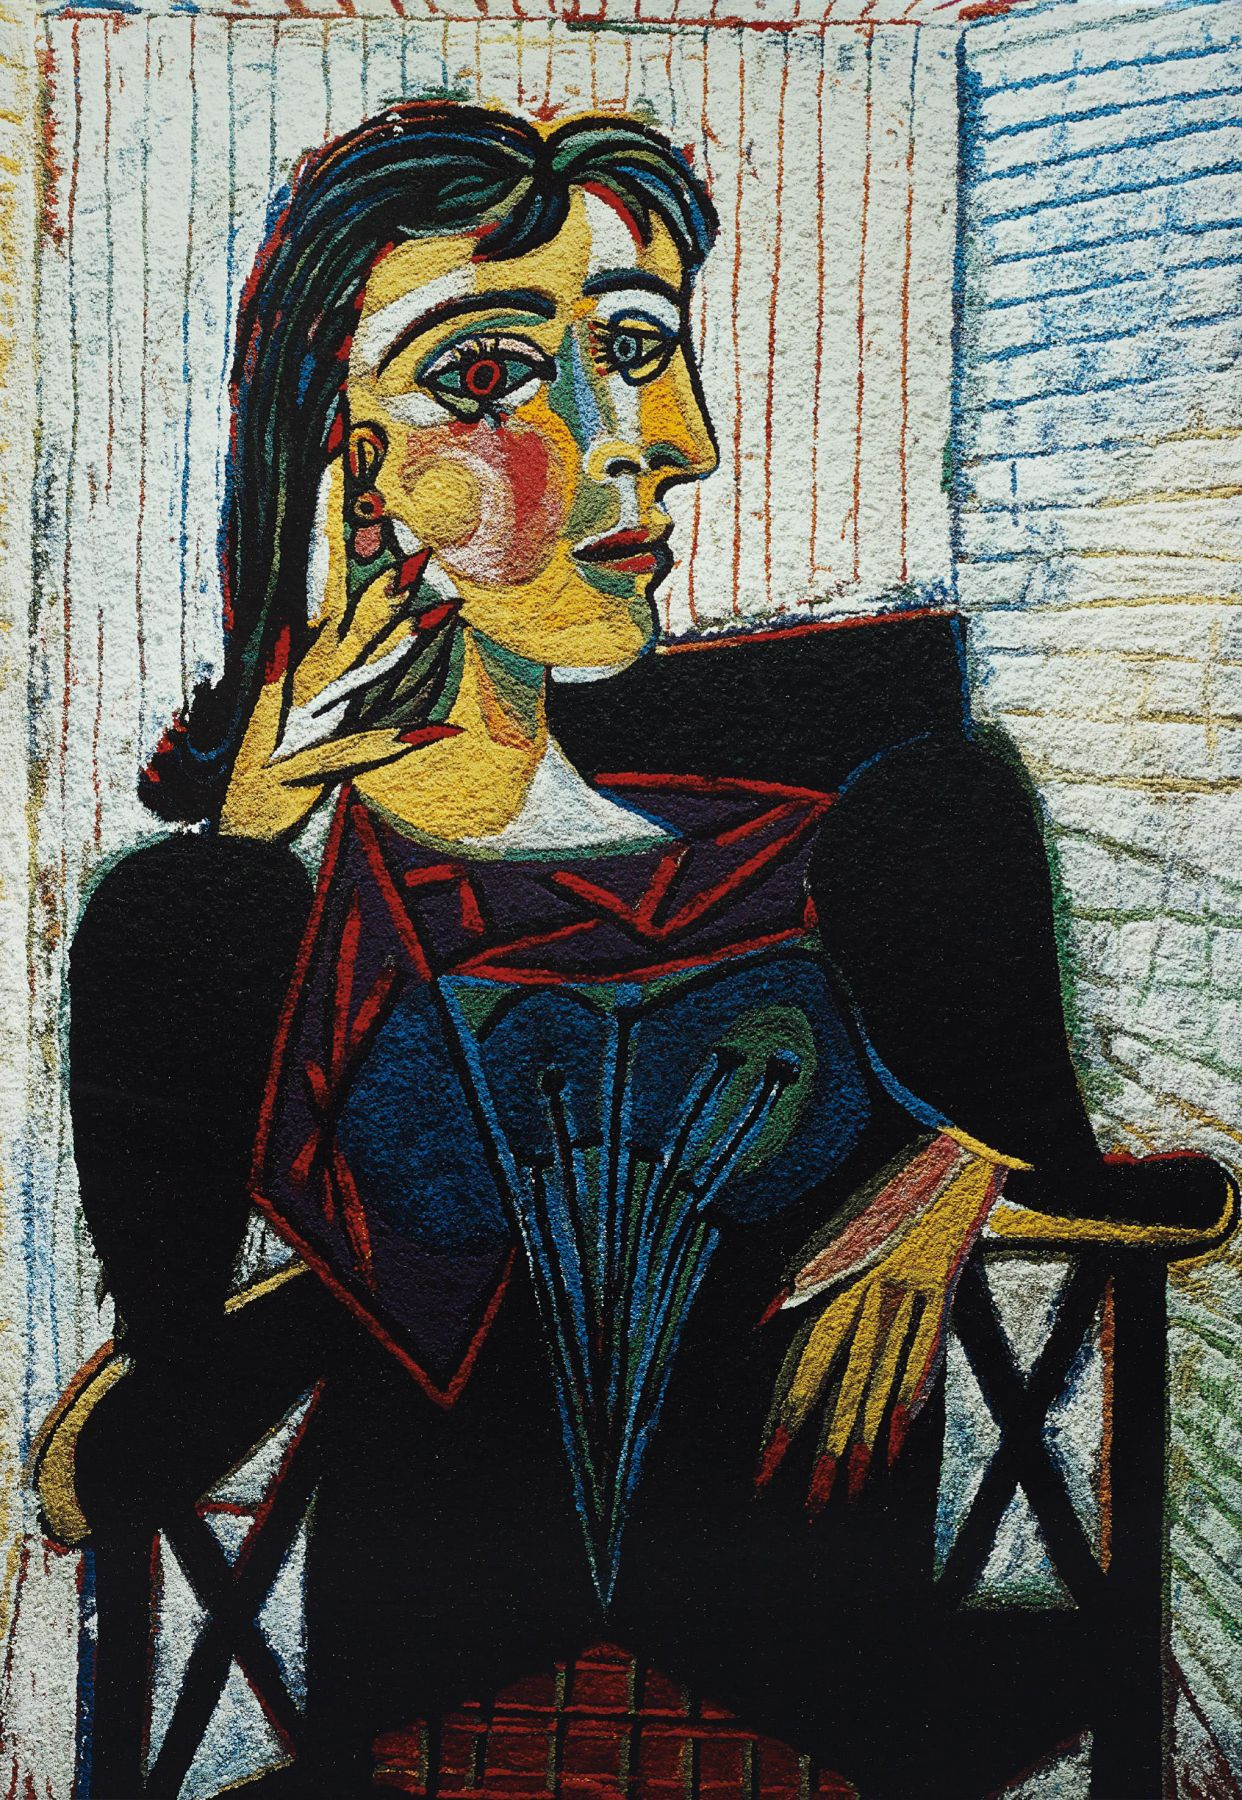 vik muniz Dora Maar, After Picasso, from the Pictures of Pigment series